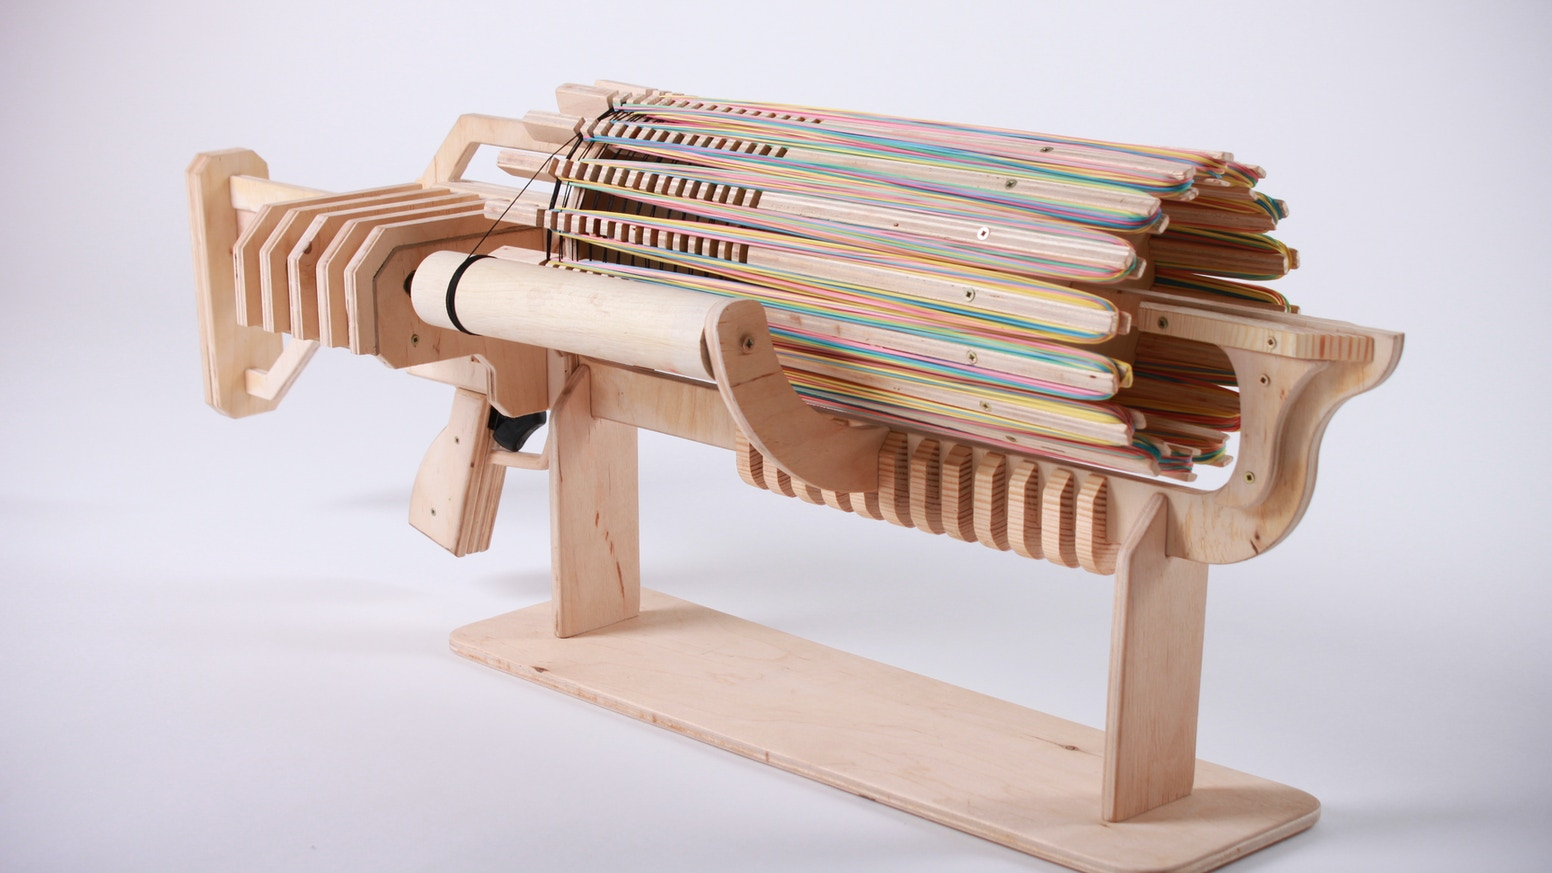 Rubber band machine gun with unique fast charger by alex shpetniy shoot fast charge fast huge ammunition and destructive force rubber band apocalypse is malvernweather Image collections